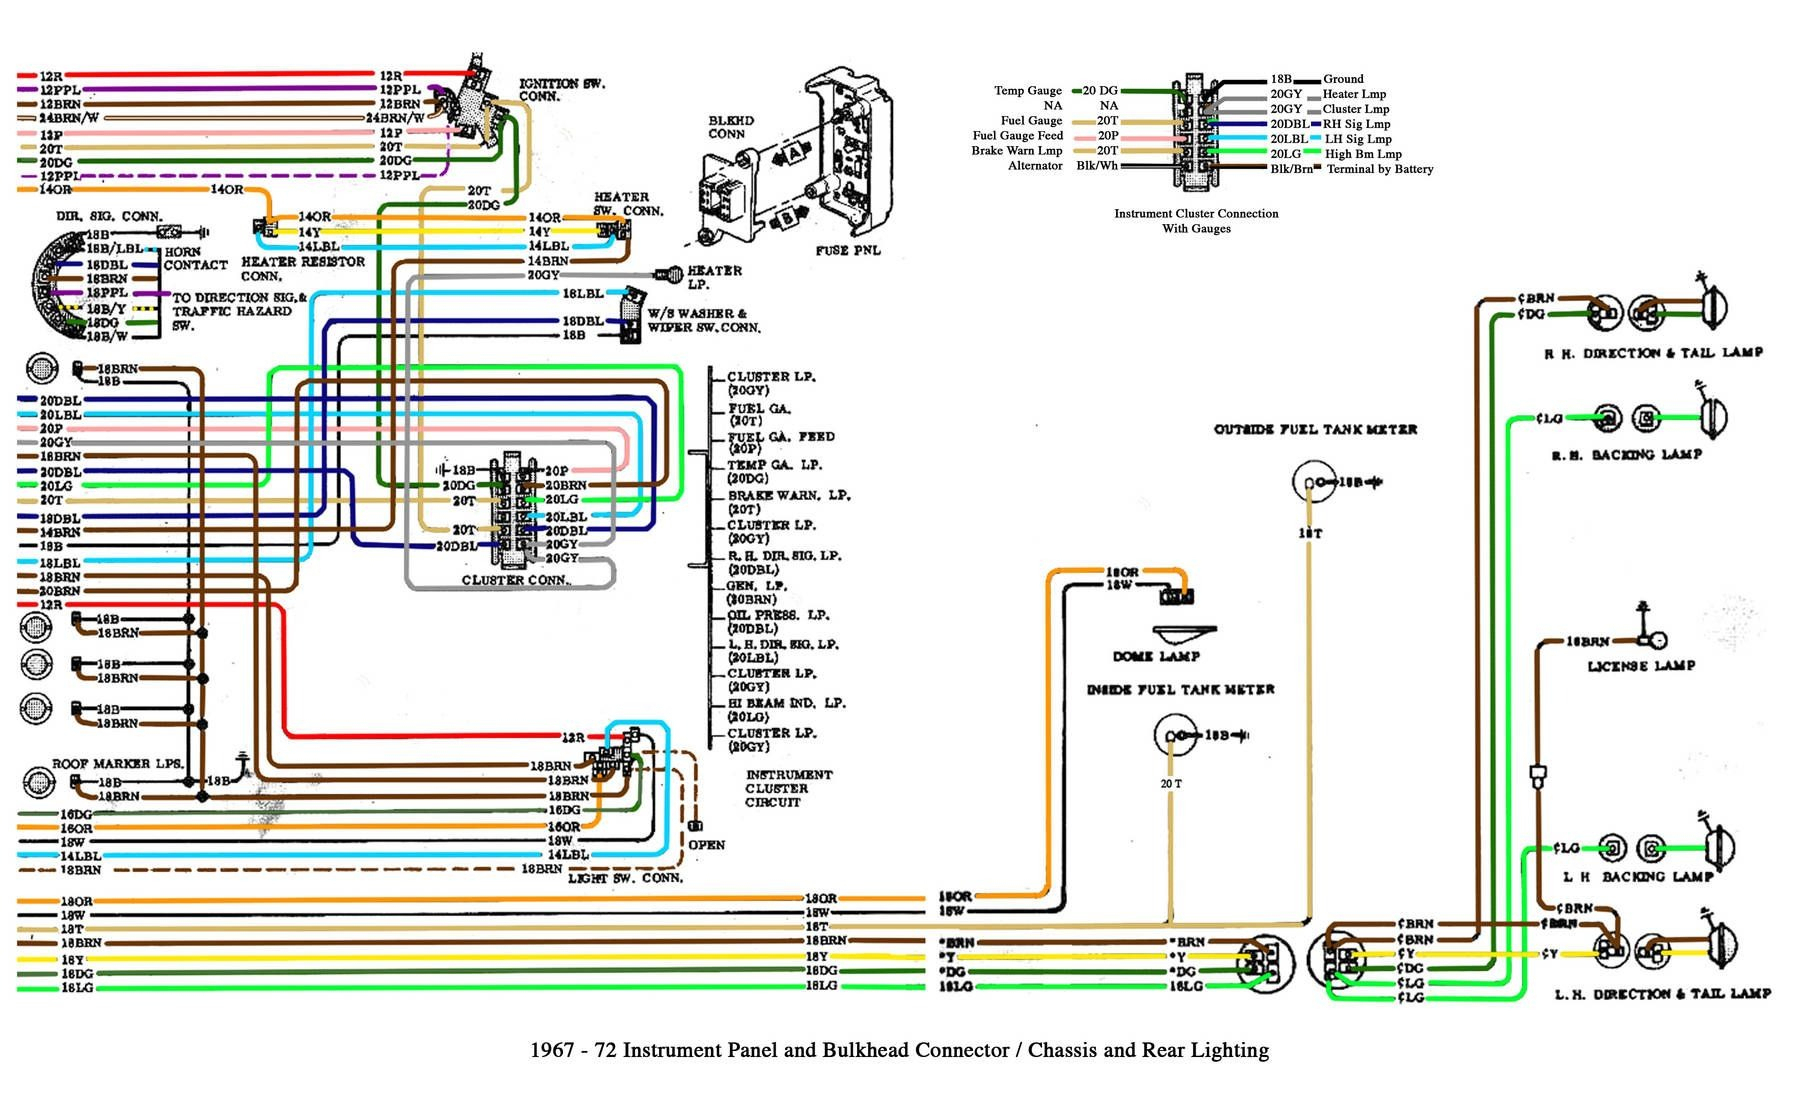 Old Trailer Wiring Diagram | Wiring Library - Old Trailer Wiring Diagram